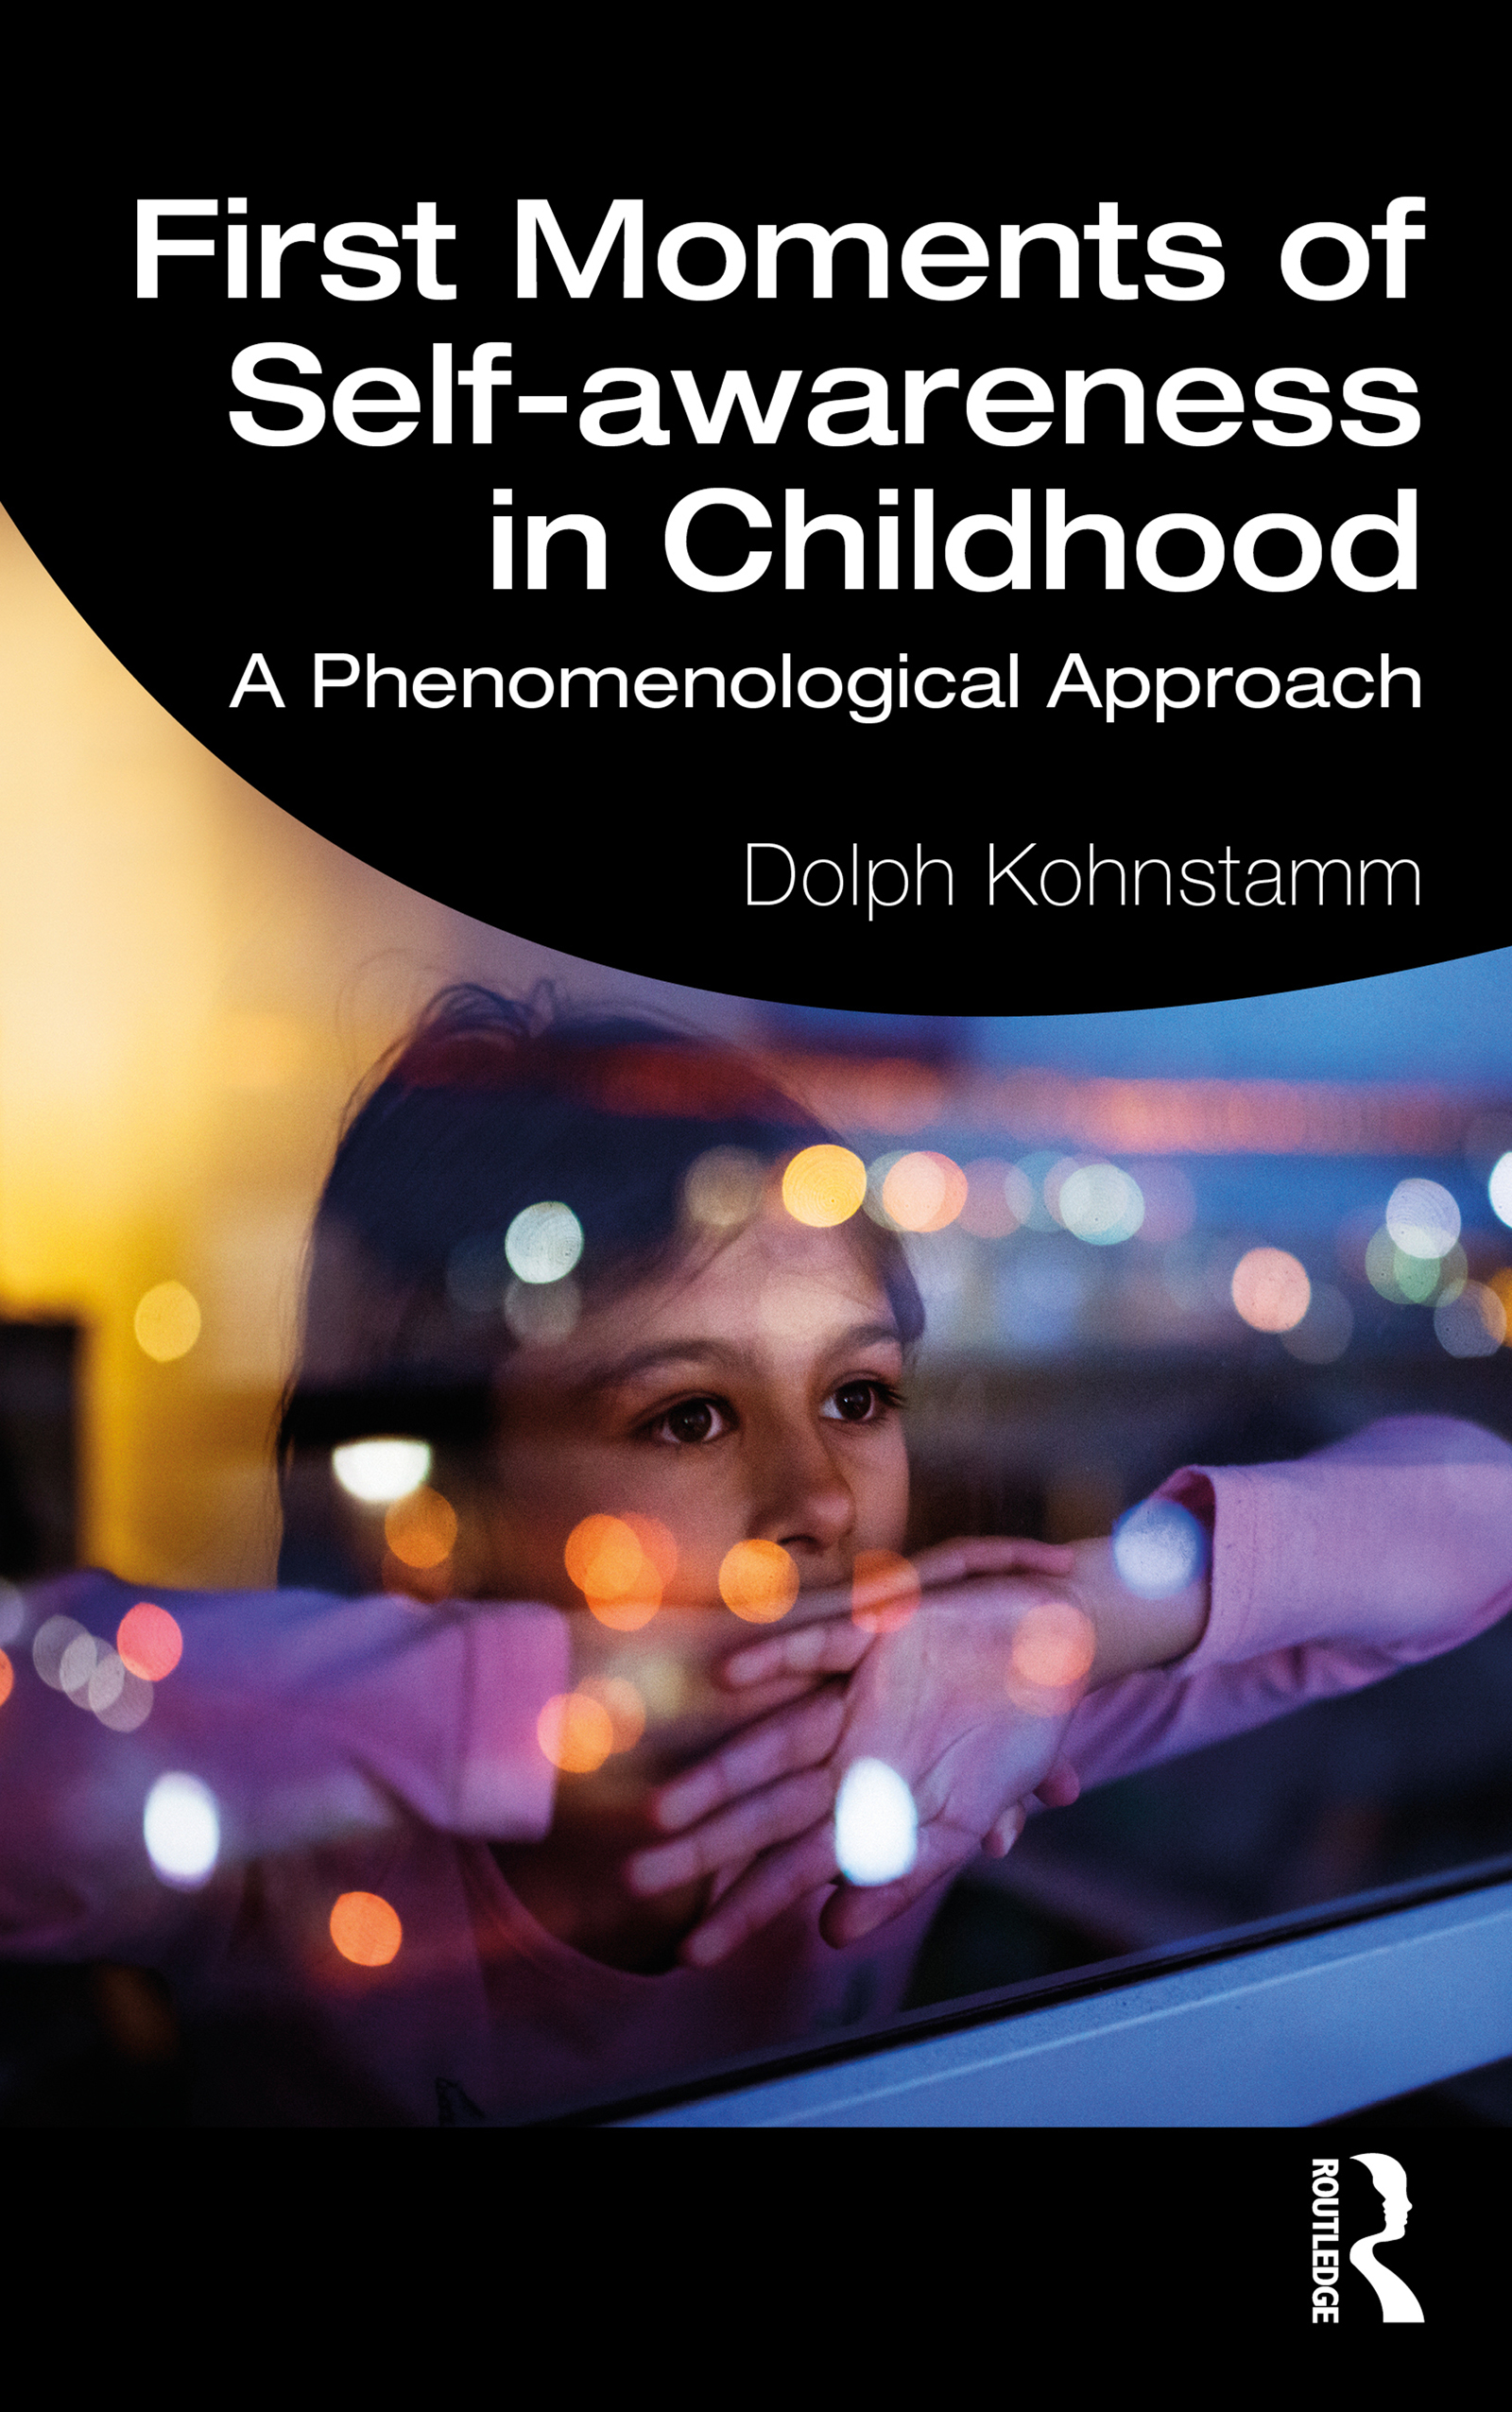 First Moments of Self-Awareness in Childhood